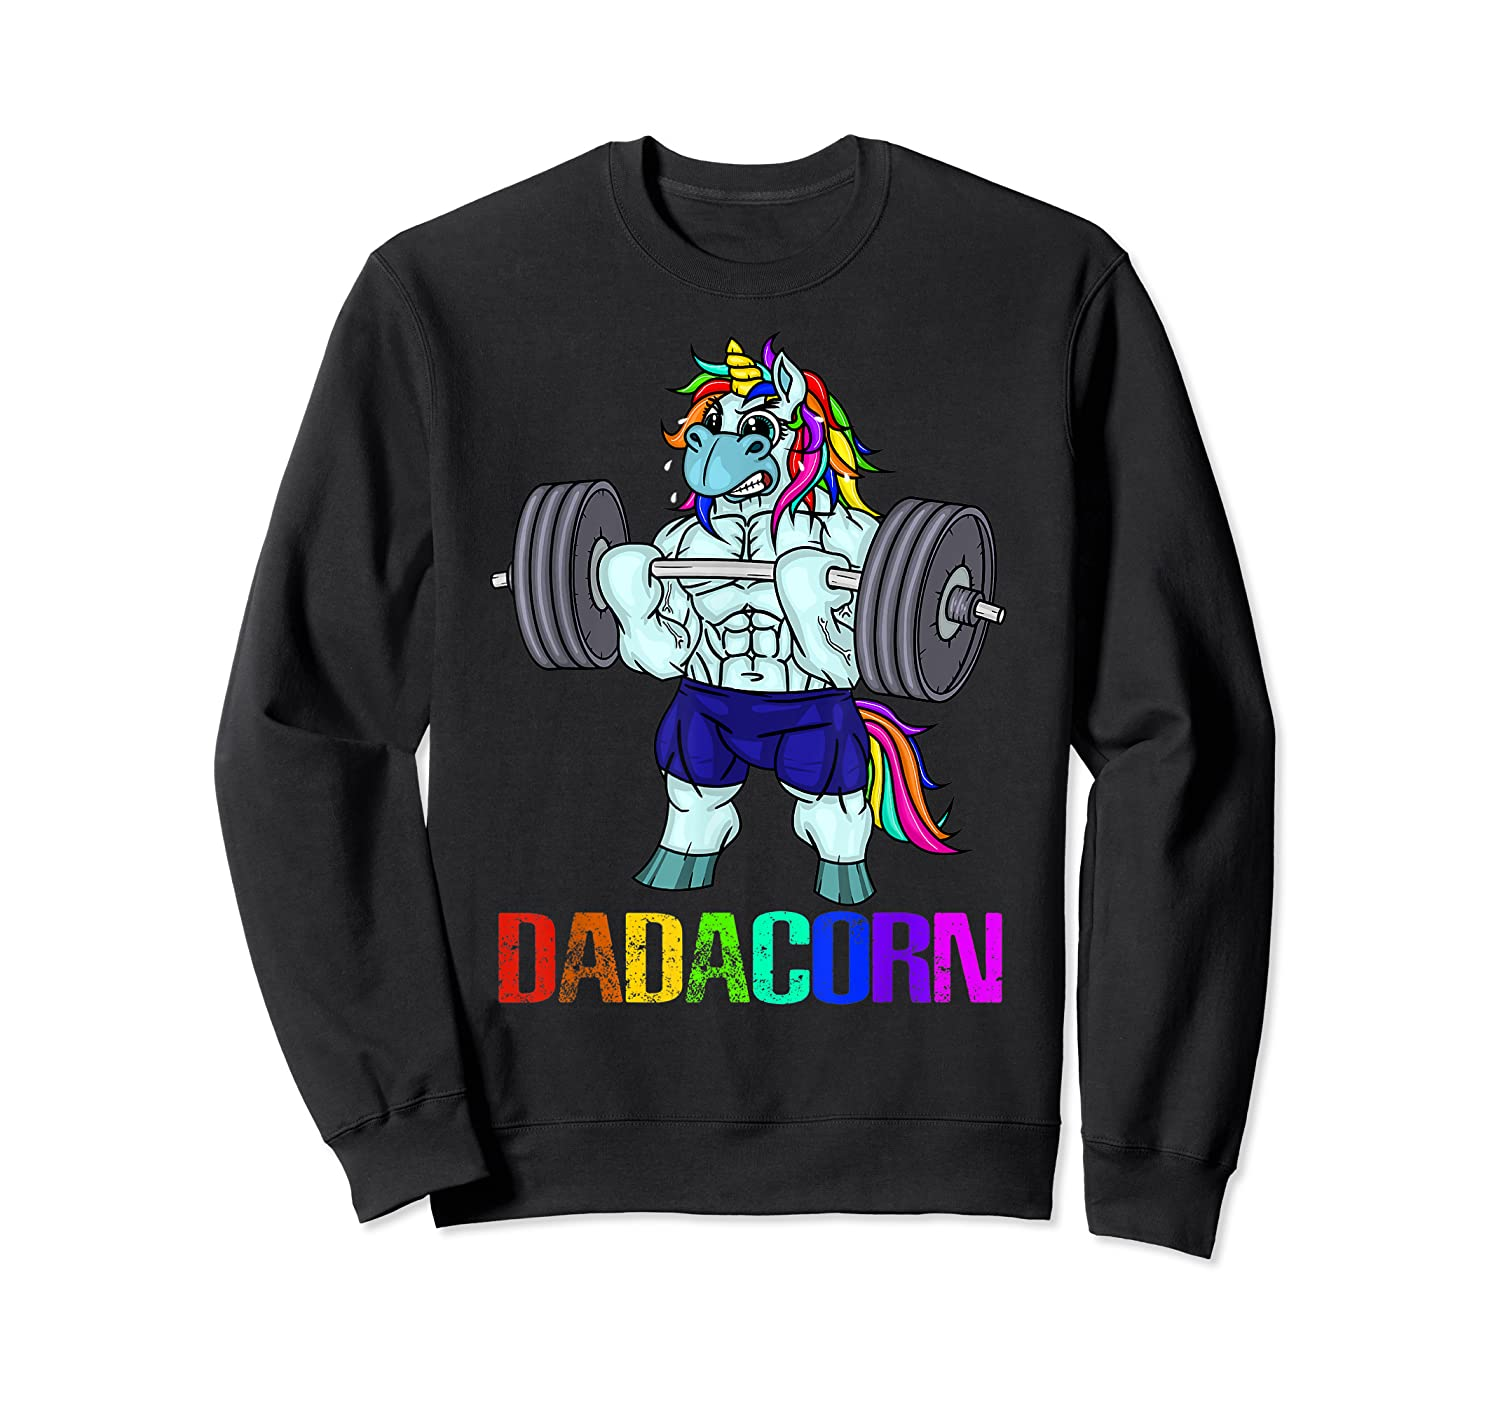 Dadacorn Manly Unicorn Weightlifting Muscle Fathers Day Gift Shirts Crewneck Sweater